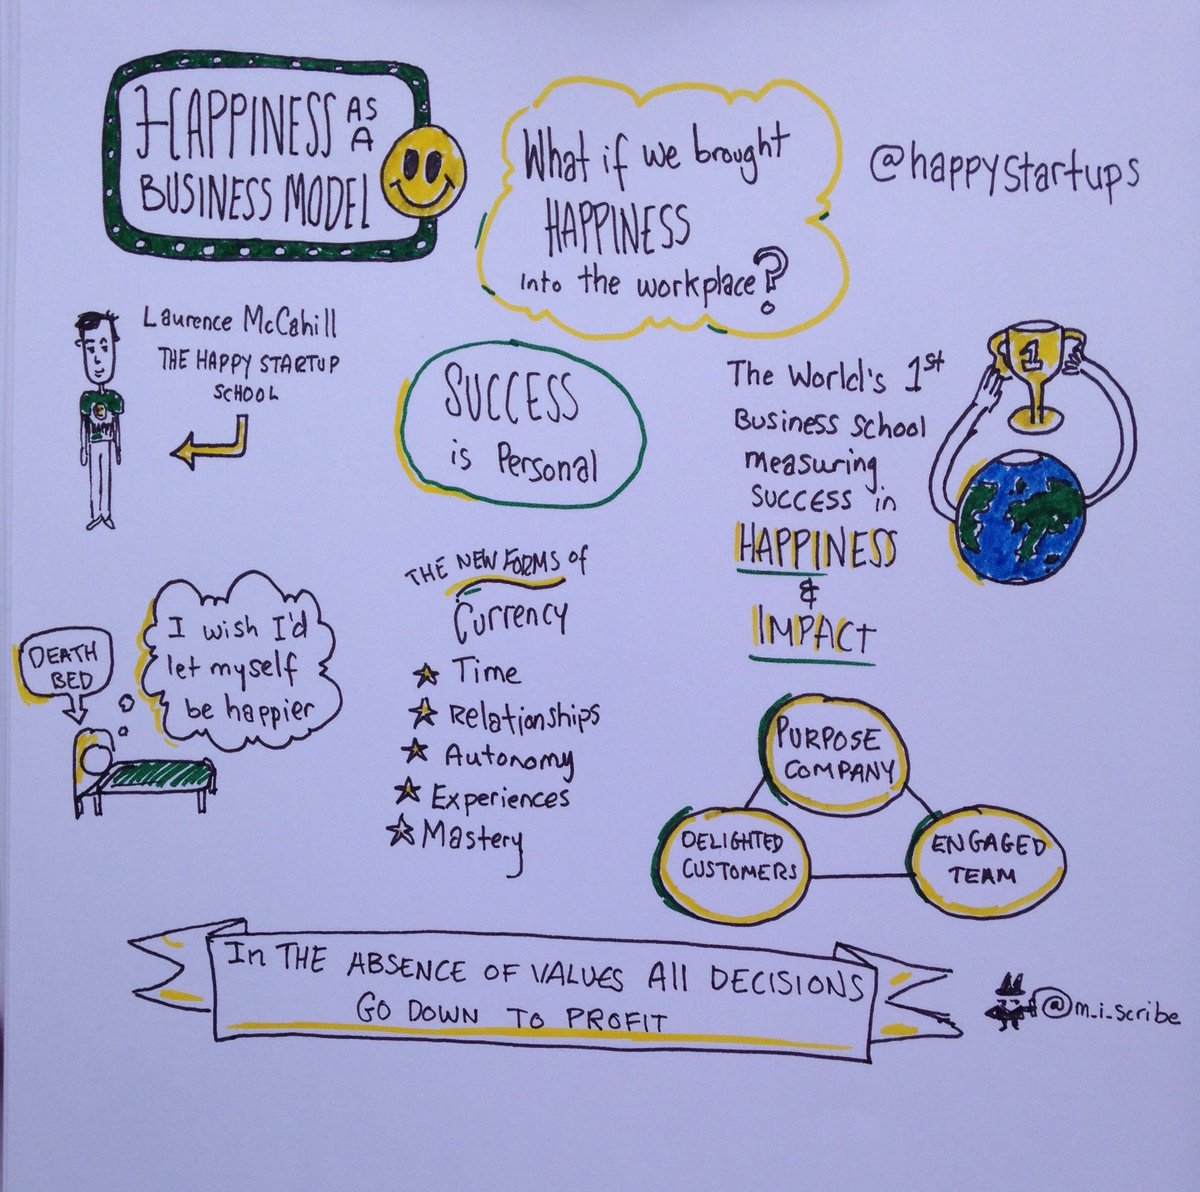 What if we brought #happiness into the work place? 😋 a great talk from @happystartups #OSFEST16 #osfvisual https://t.co/gFVSYCKN9m